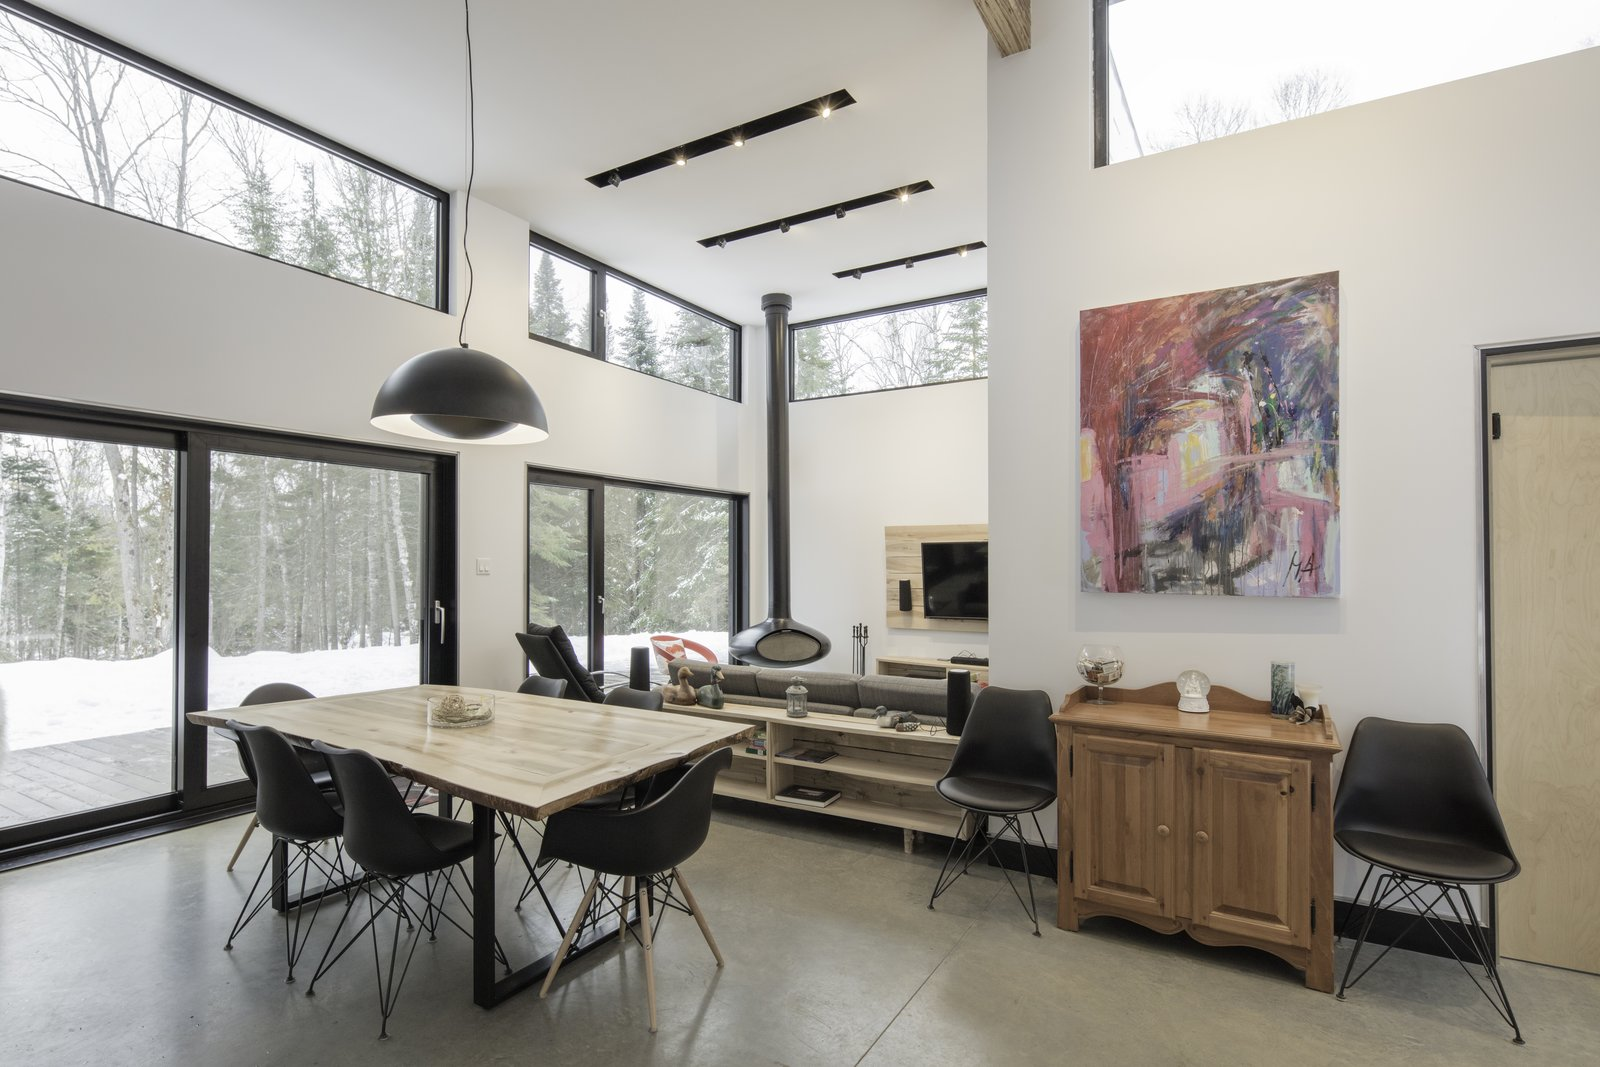 Living, Ceiling, Table, Track, Accent, Concrete, Hanging, and Wood Burning Interiors  Living Table Ceiling Accent Photos from Maison Lac Brûlé